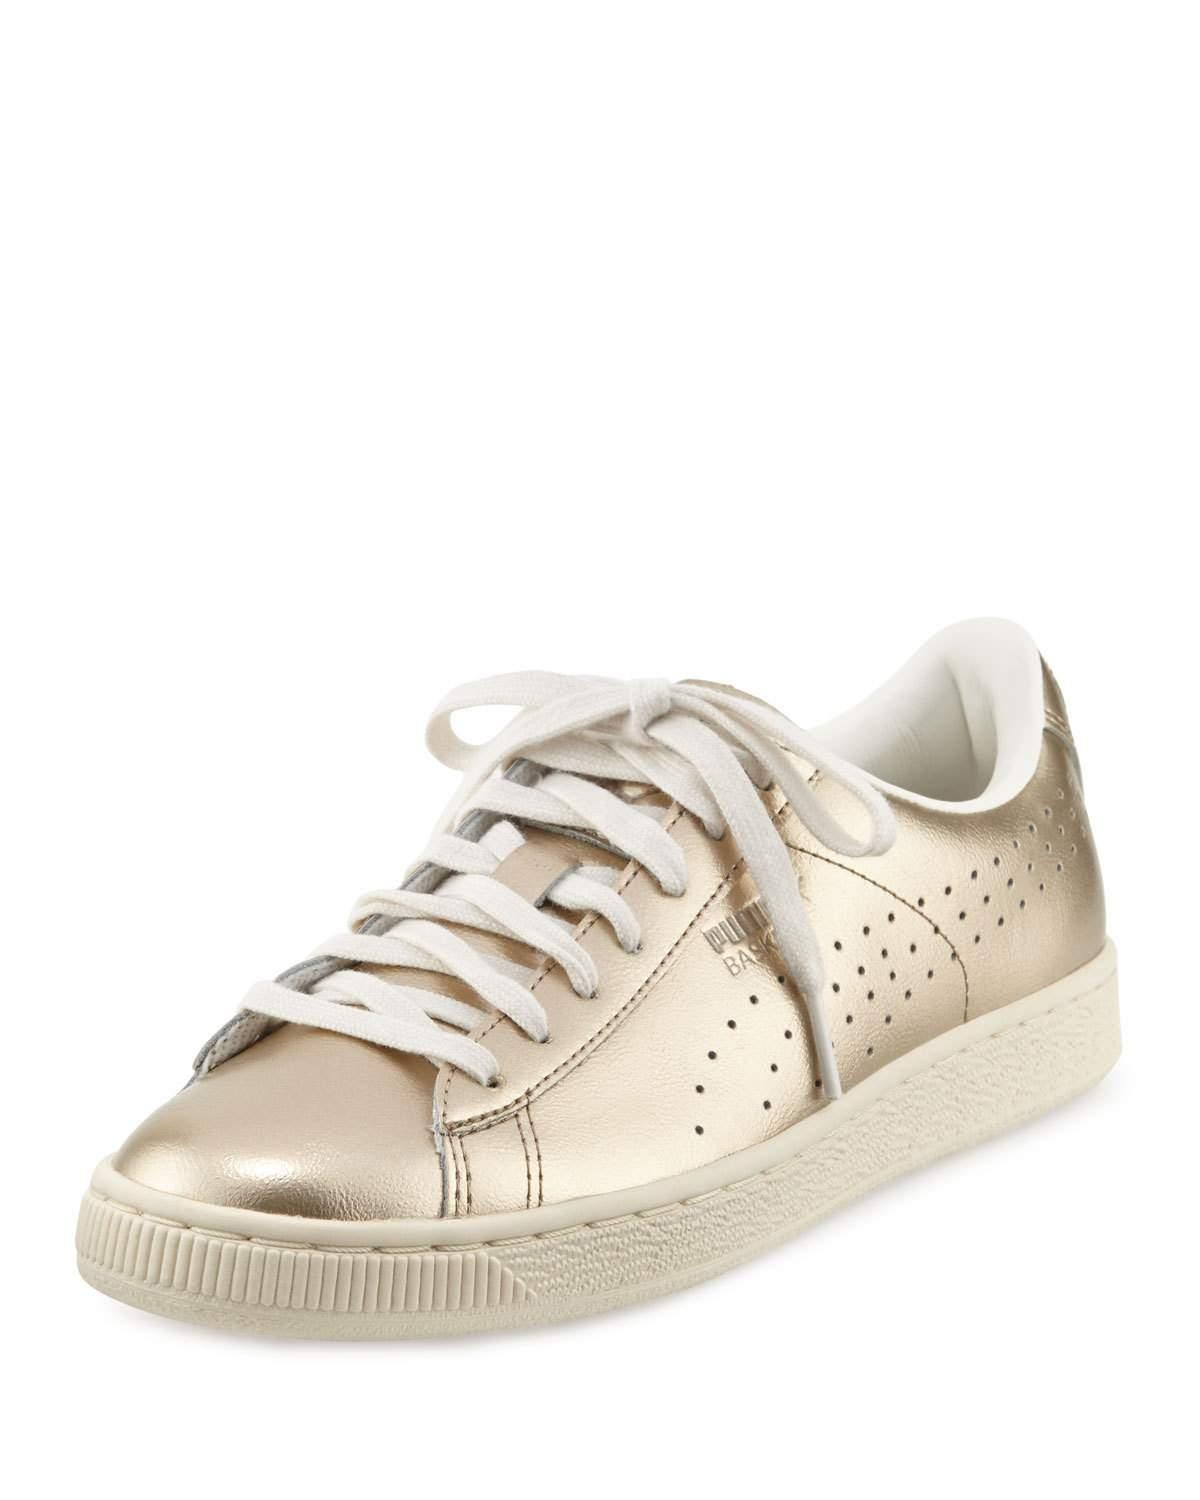 Puma Metallic Leather Low-Top Sneakers